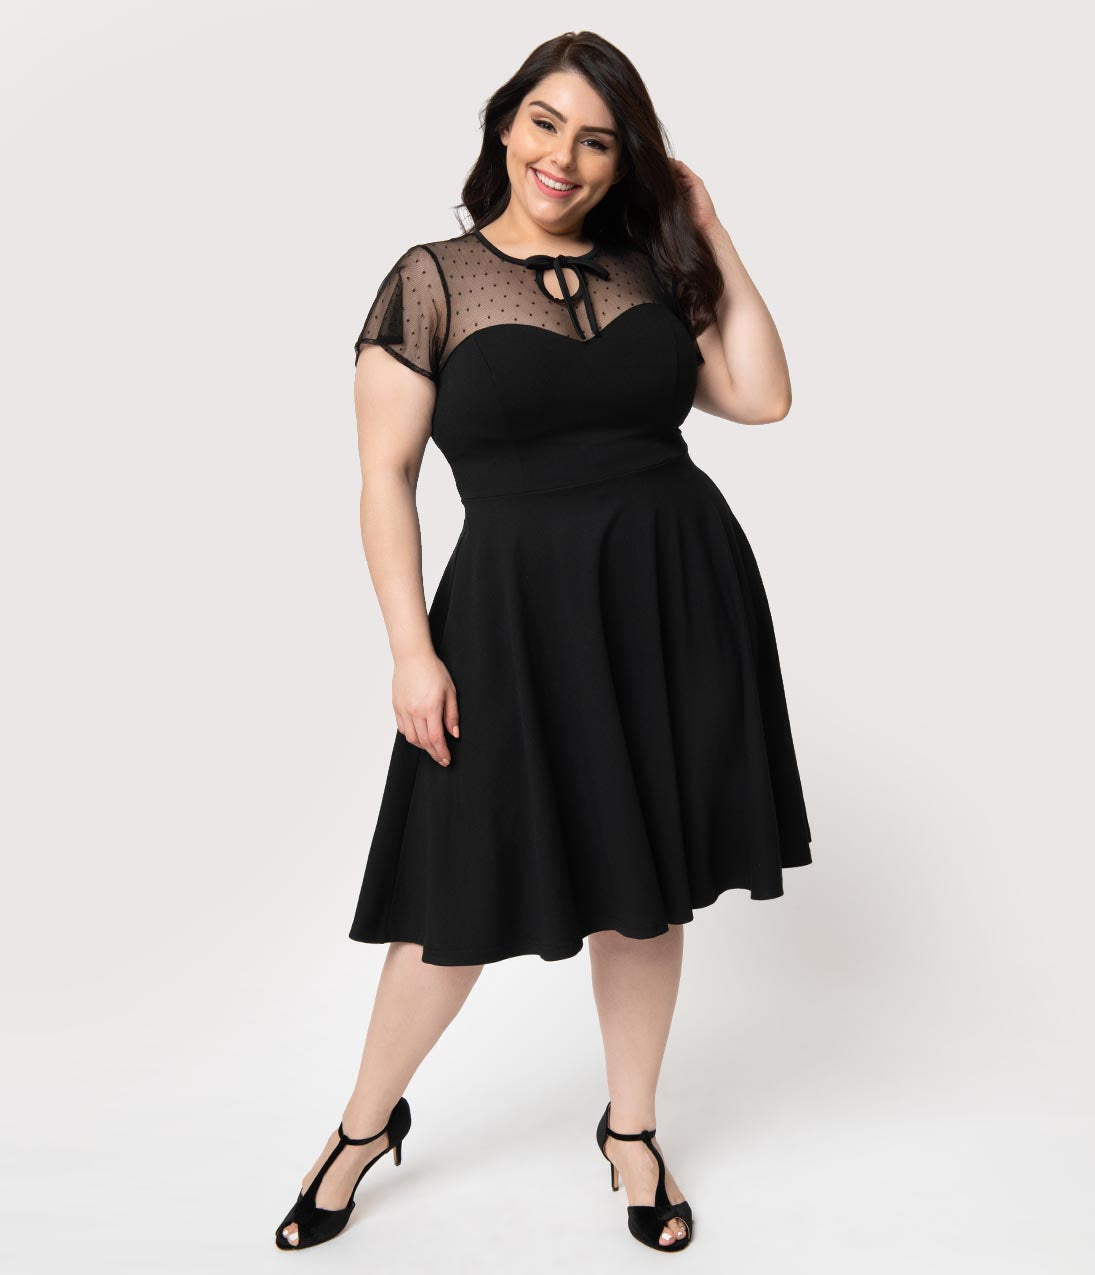 Swing Dance Clothing You Can Dance In Unique Vintage Plus Size 1940S Style Black Swiss Dotted Mesh Heather Midi Dress $98.00 AT vintagedancer.com